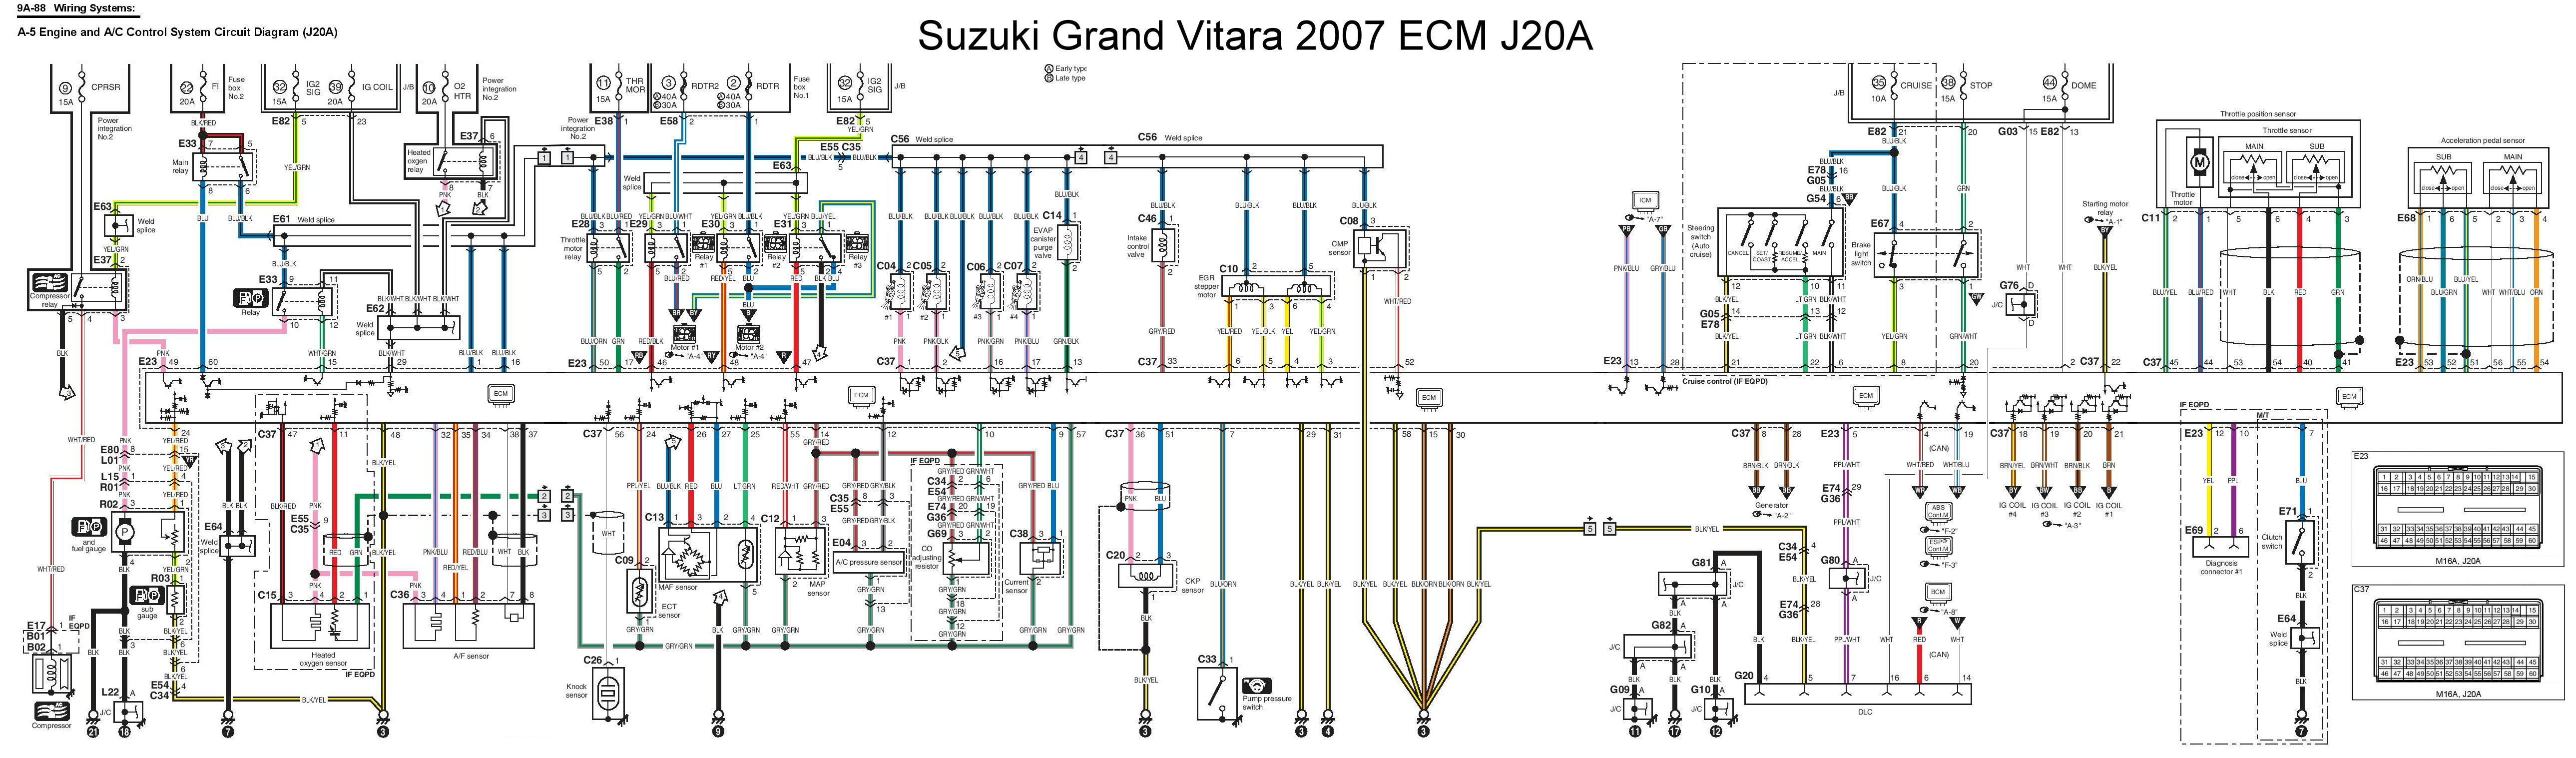 Wiring Harness Suzuki Grand Vitara 2005 39 Diagram Images Q8c21w9944rm9l5zg J20a Ecu Pinouts Forums Forum Site 2006 At